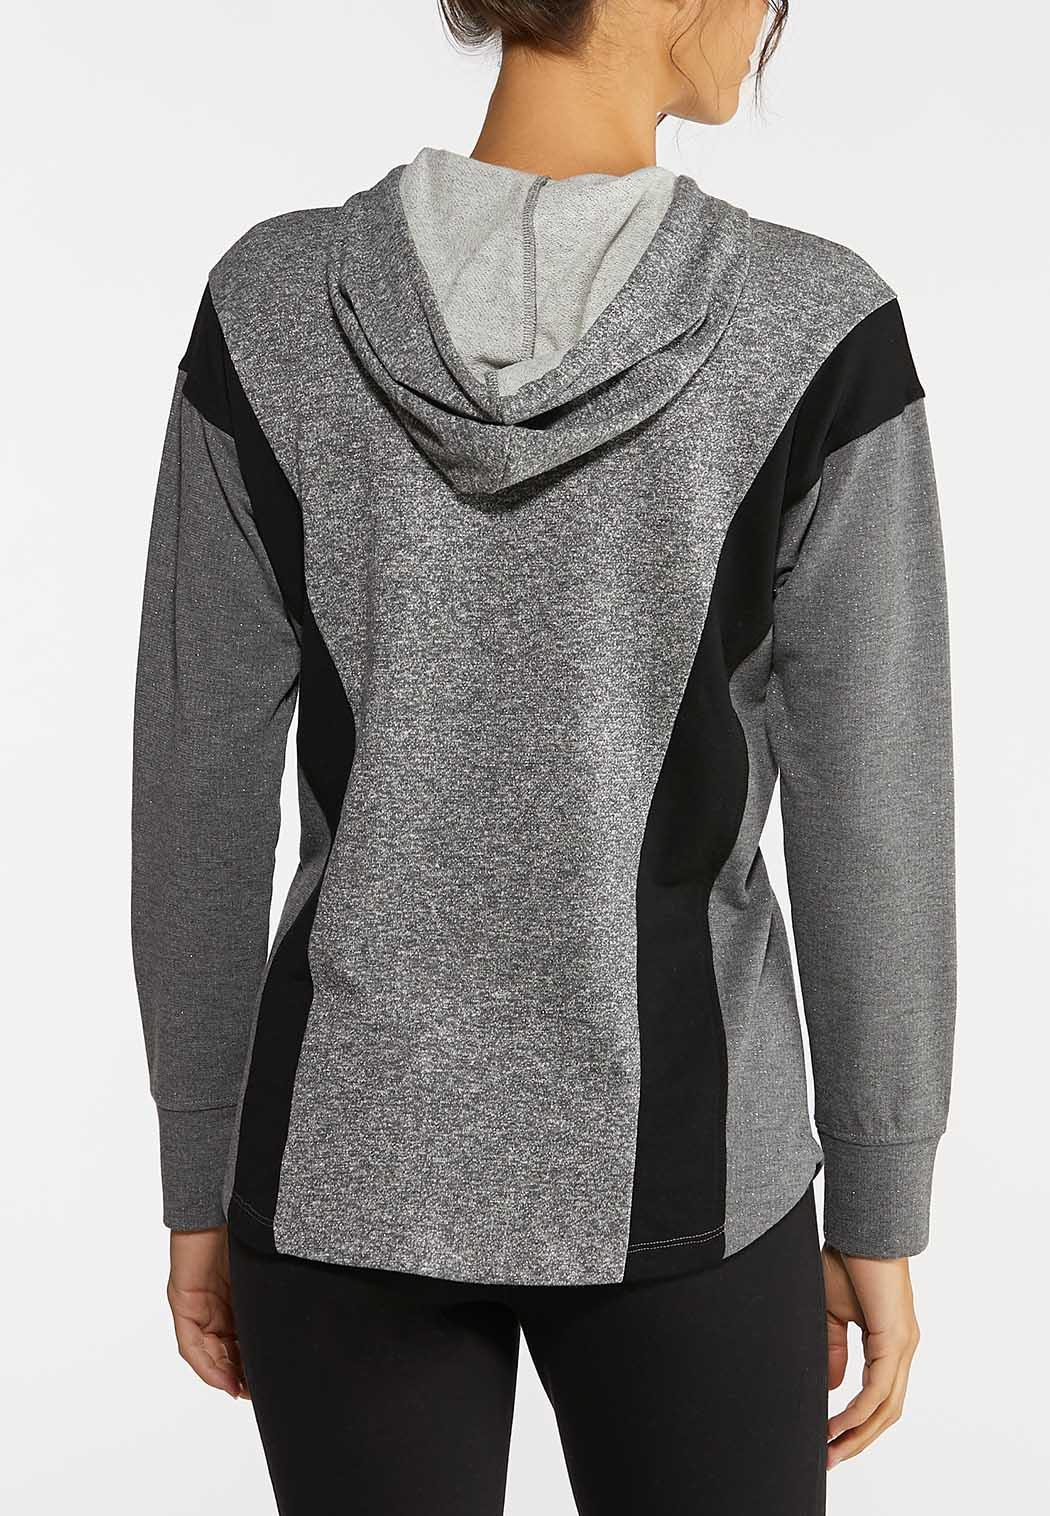 Plus Size Gray Athleisure Hooded Top (Item #44042333)